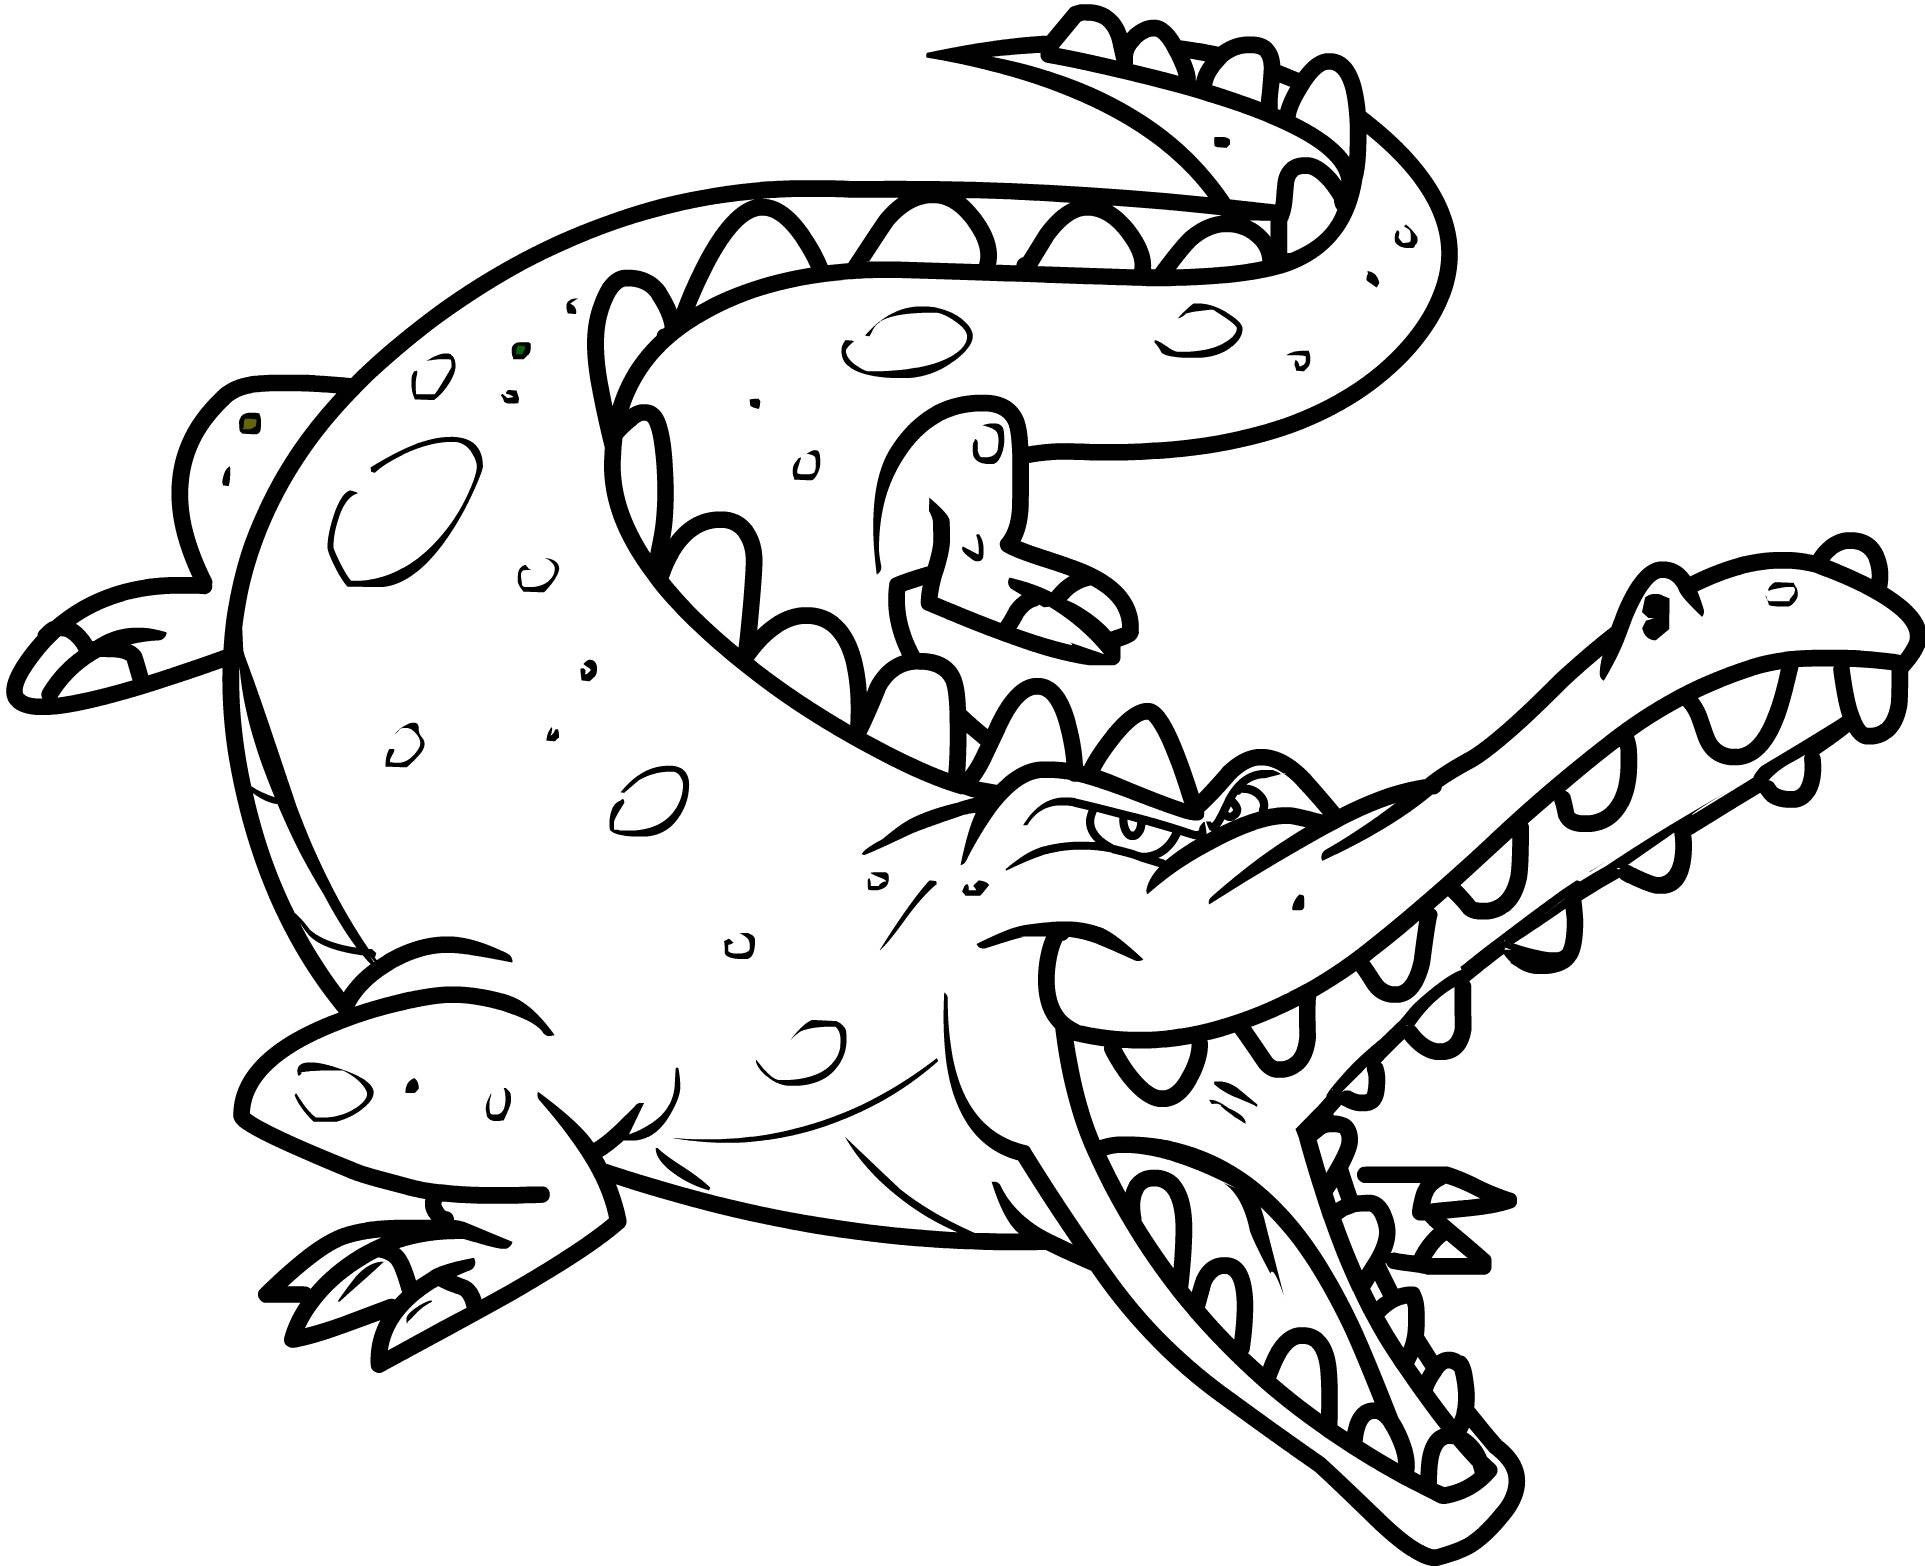 Free Printable Crocodile Coloring Pages For Kids Crocodile Free